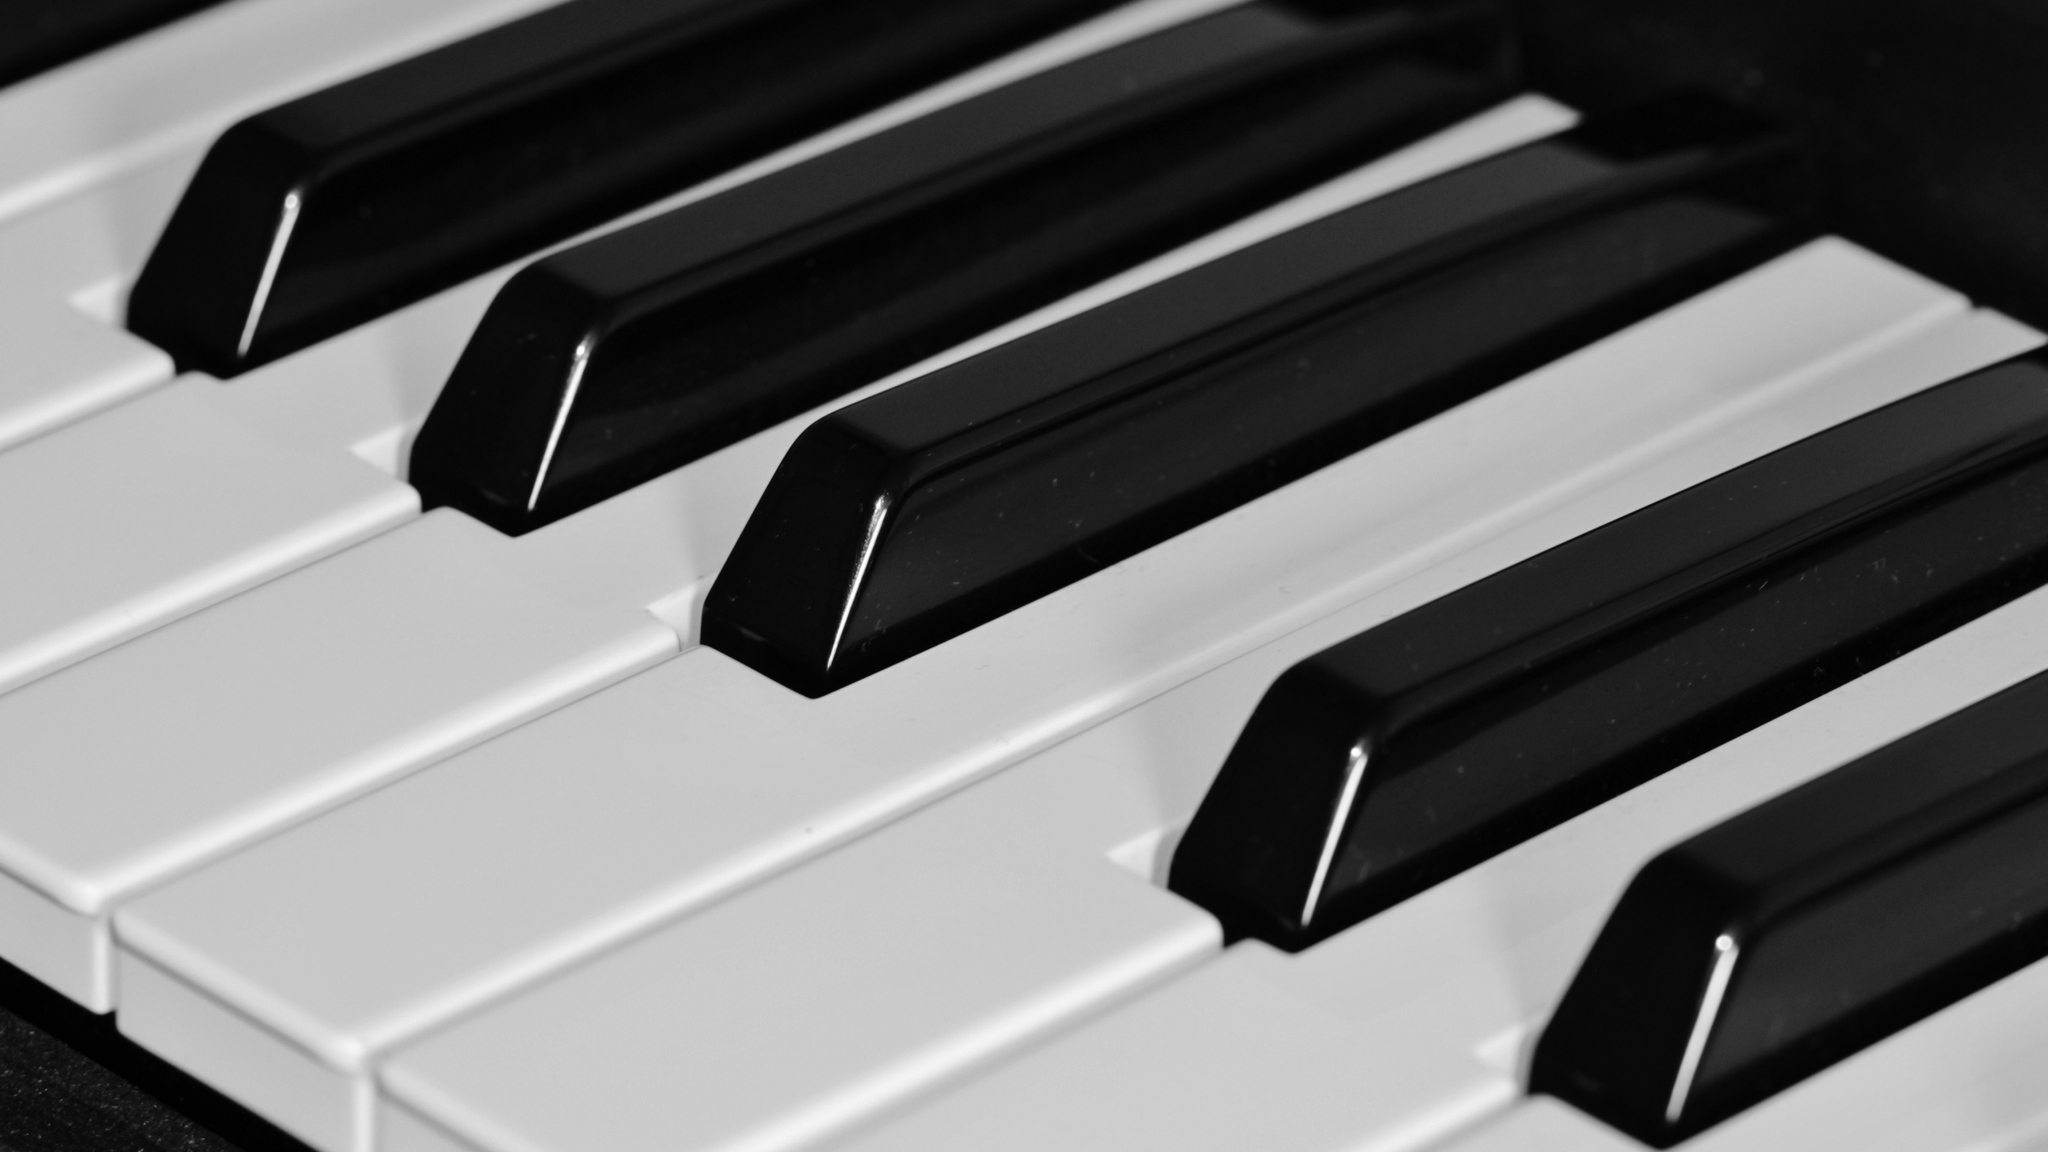 2048x1152 Piano Keys 2048x1152 Resolution Hd 4k Wallpapers